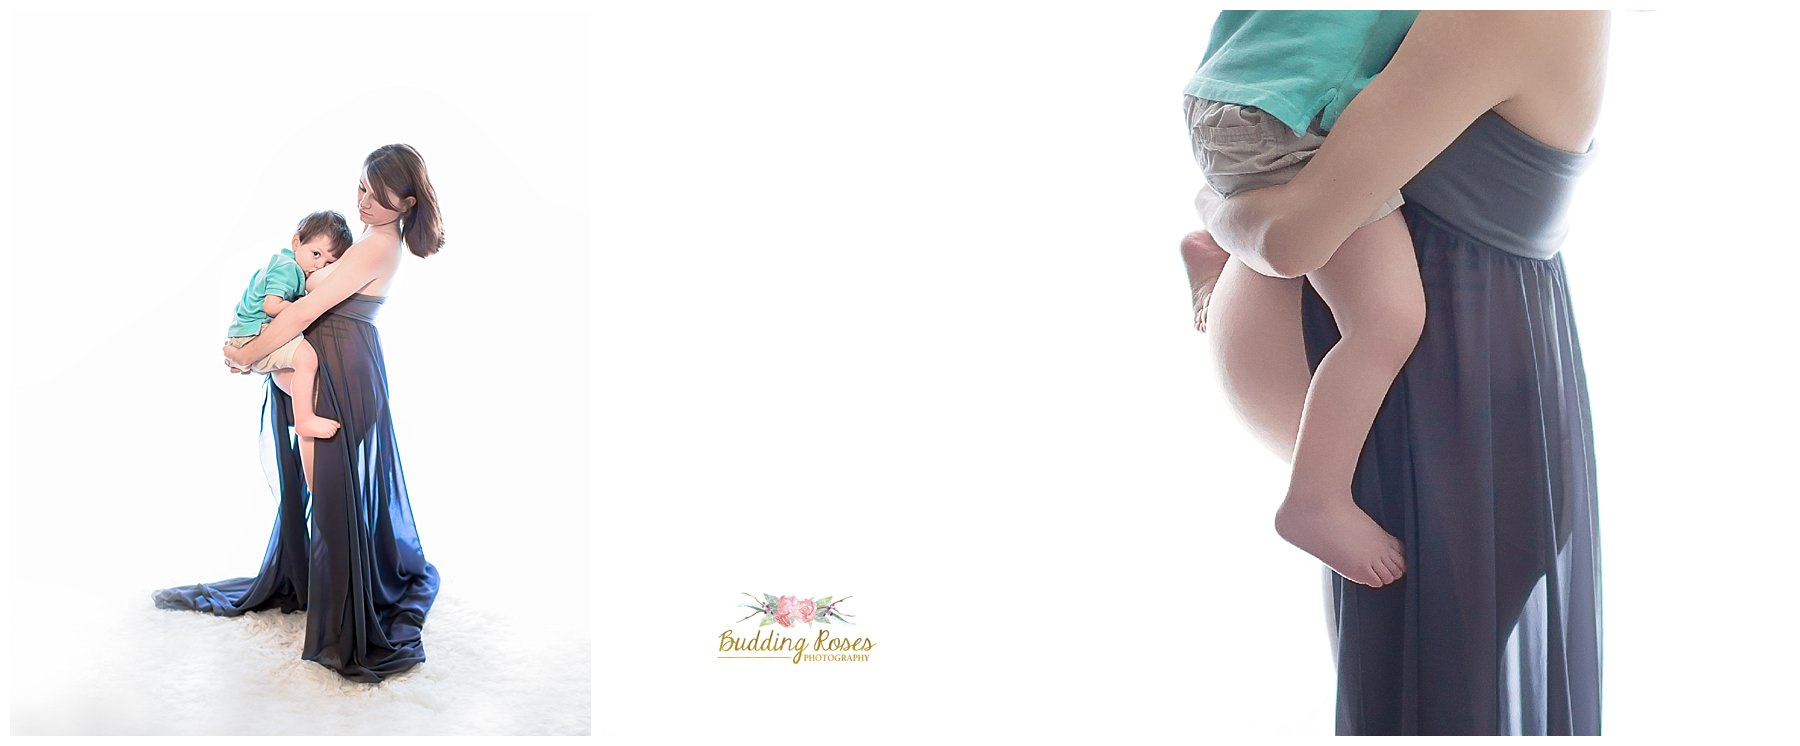 NJ Maternity Photographer, maternity pictures nj, pregnancy photographer nj, new jersey maternity photographer